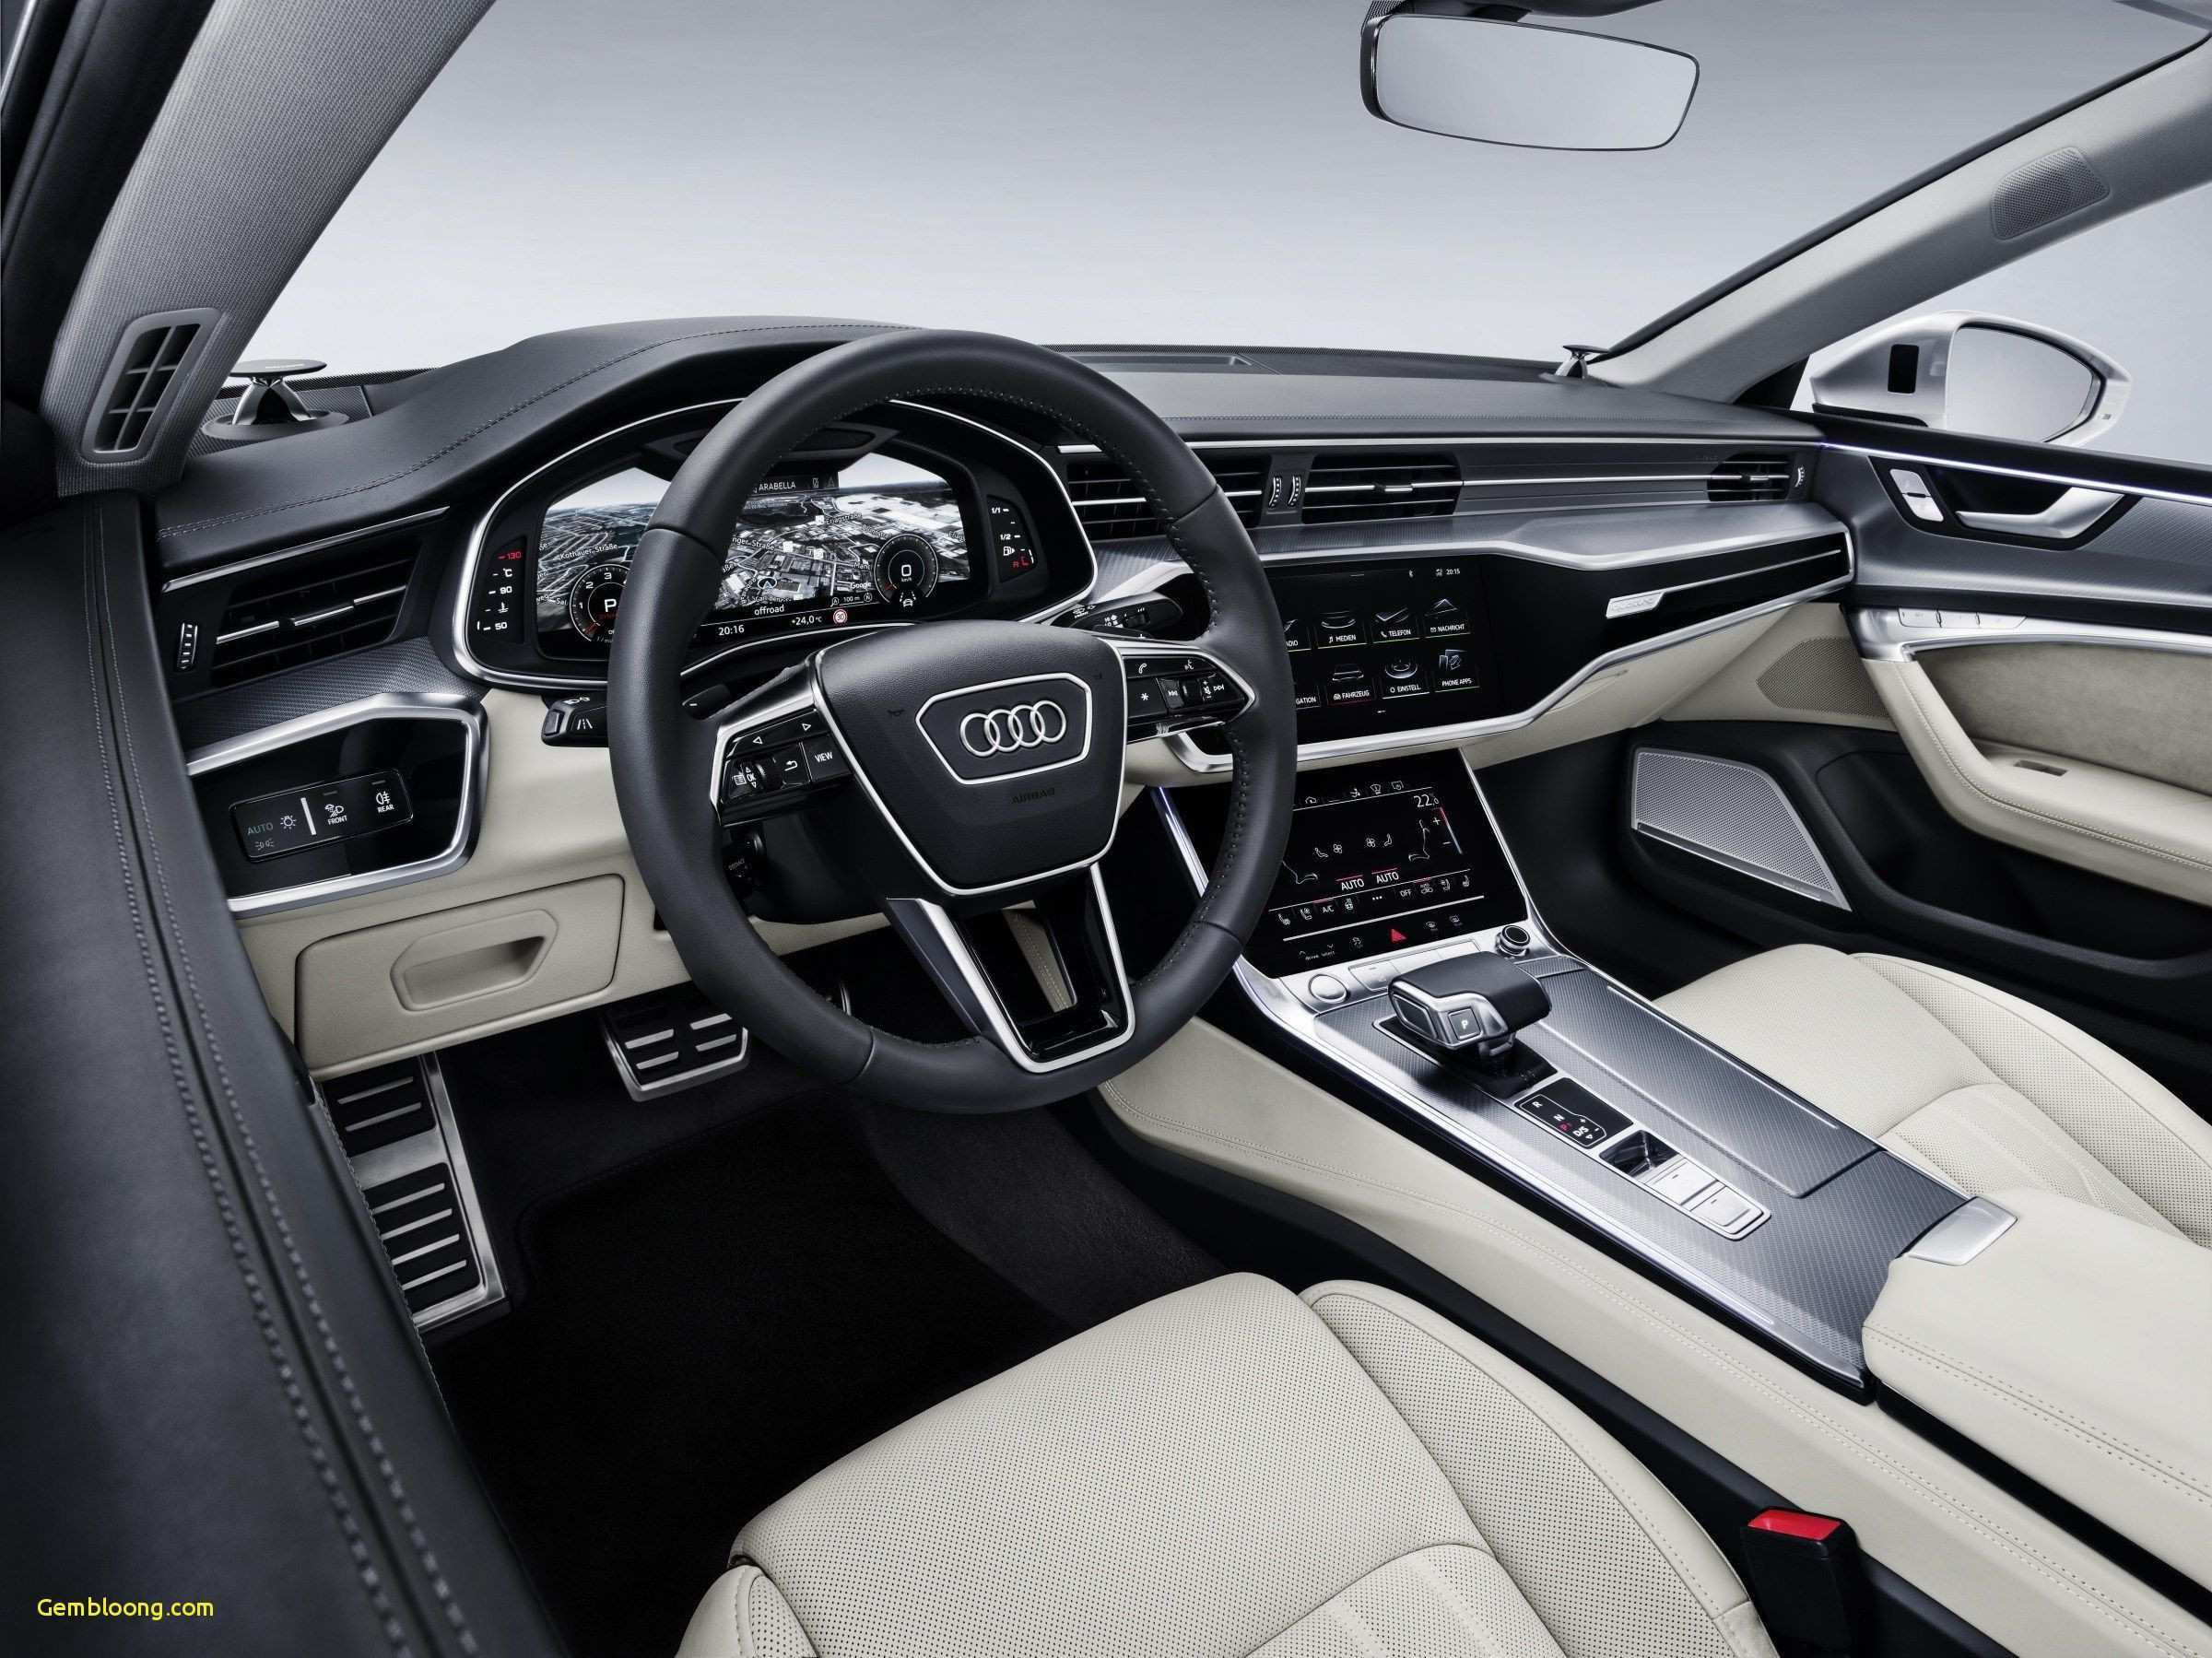 78 Best Review 2020 Audi A5 Prices with 2020 Audi A5